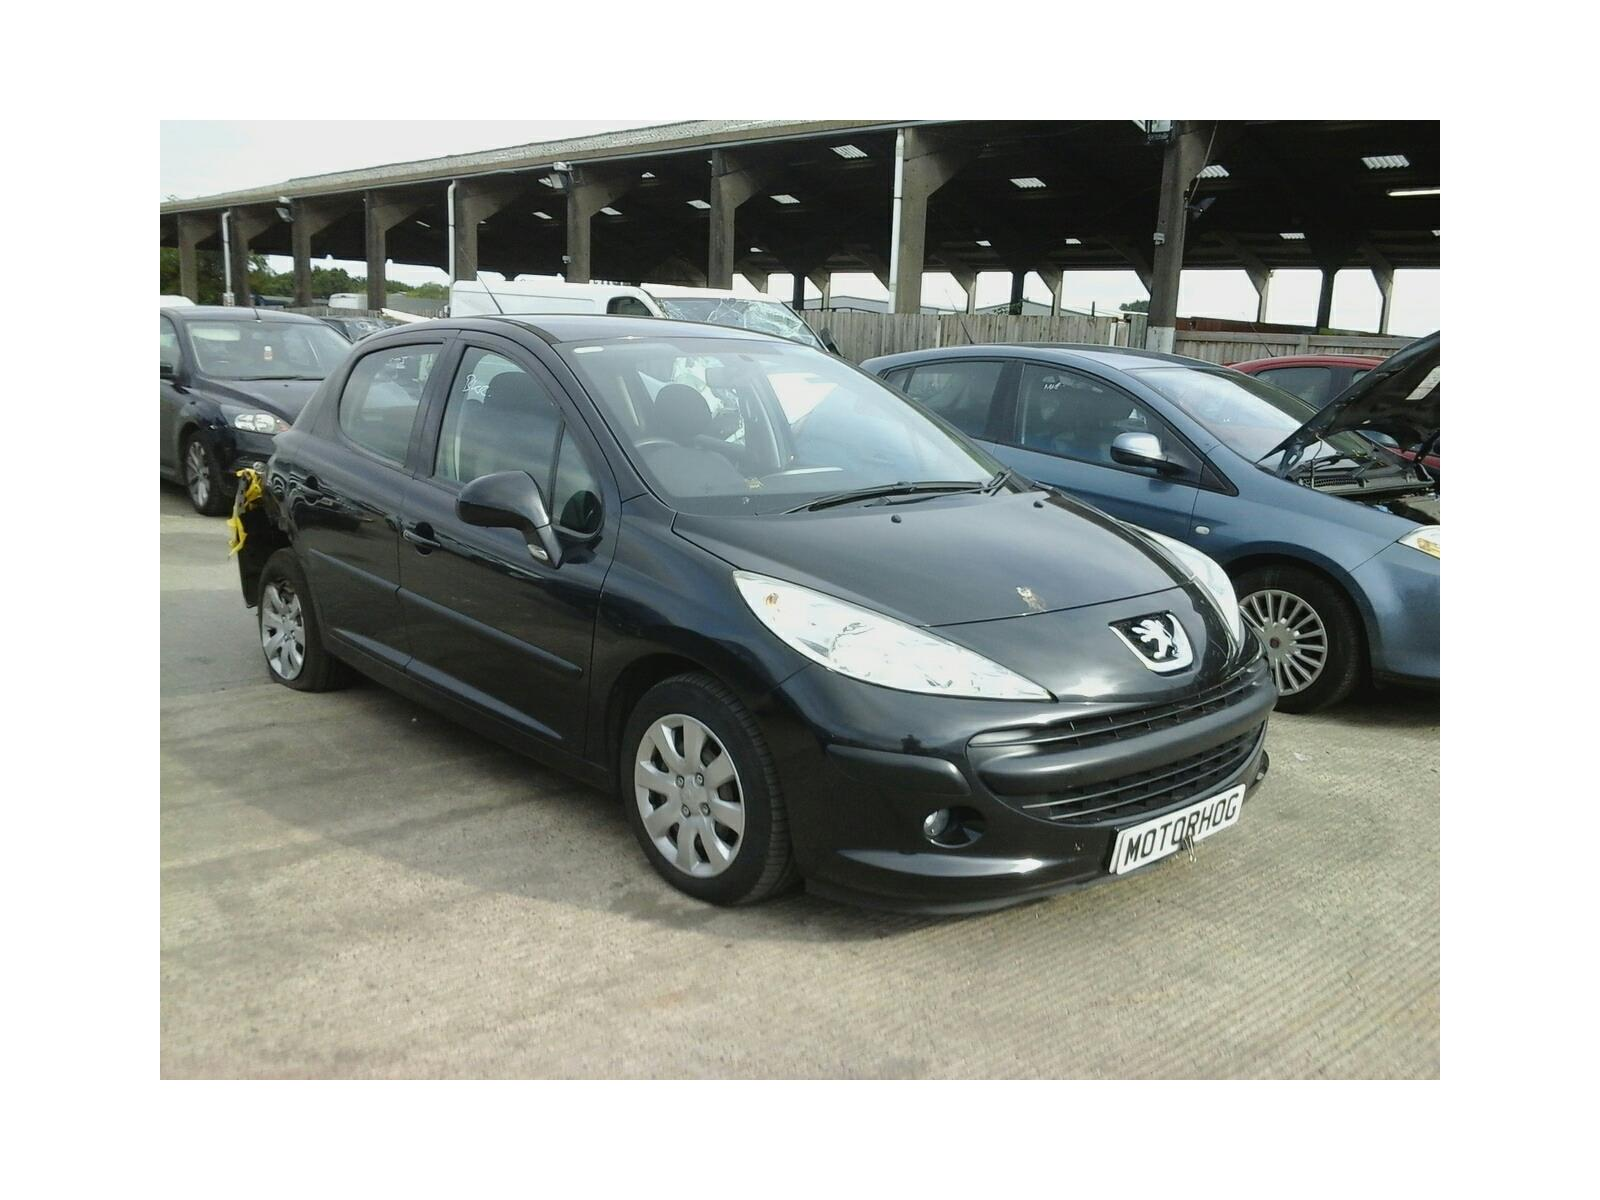 Peugeot 207 Spare Parts Catalog Sedre Wiring Diagram 2008 2006 To 2009 5 Door Hatchback Petrol Manual